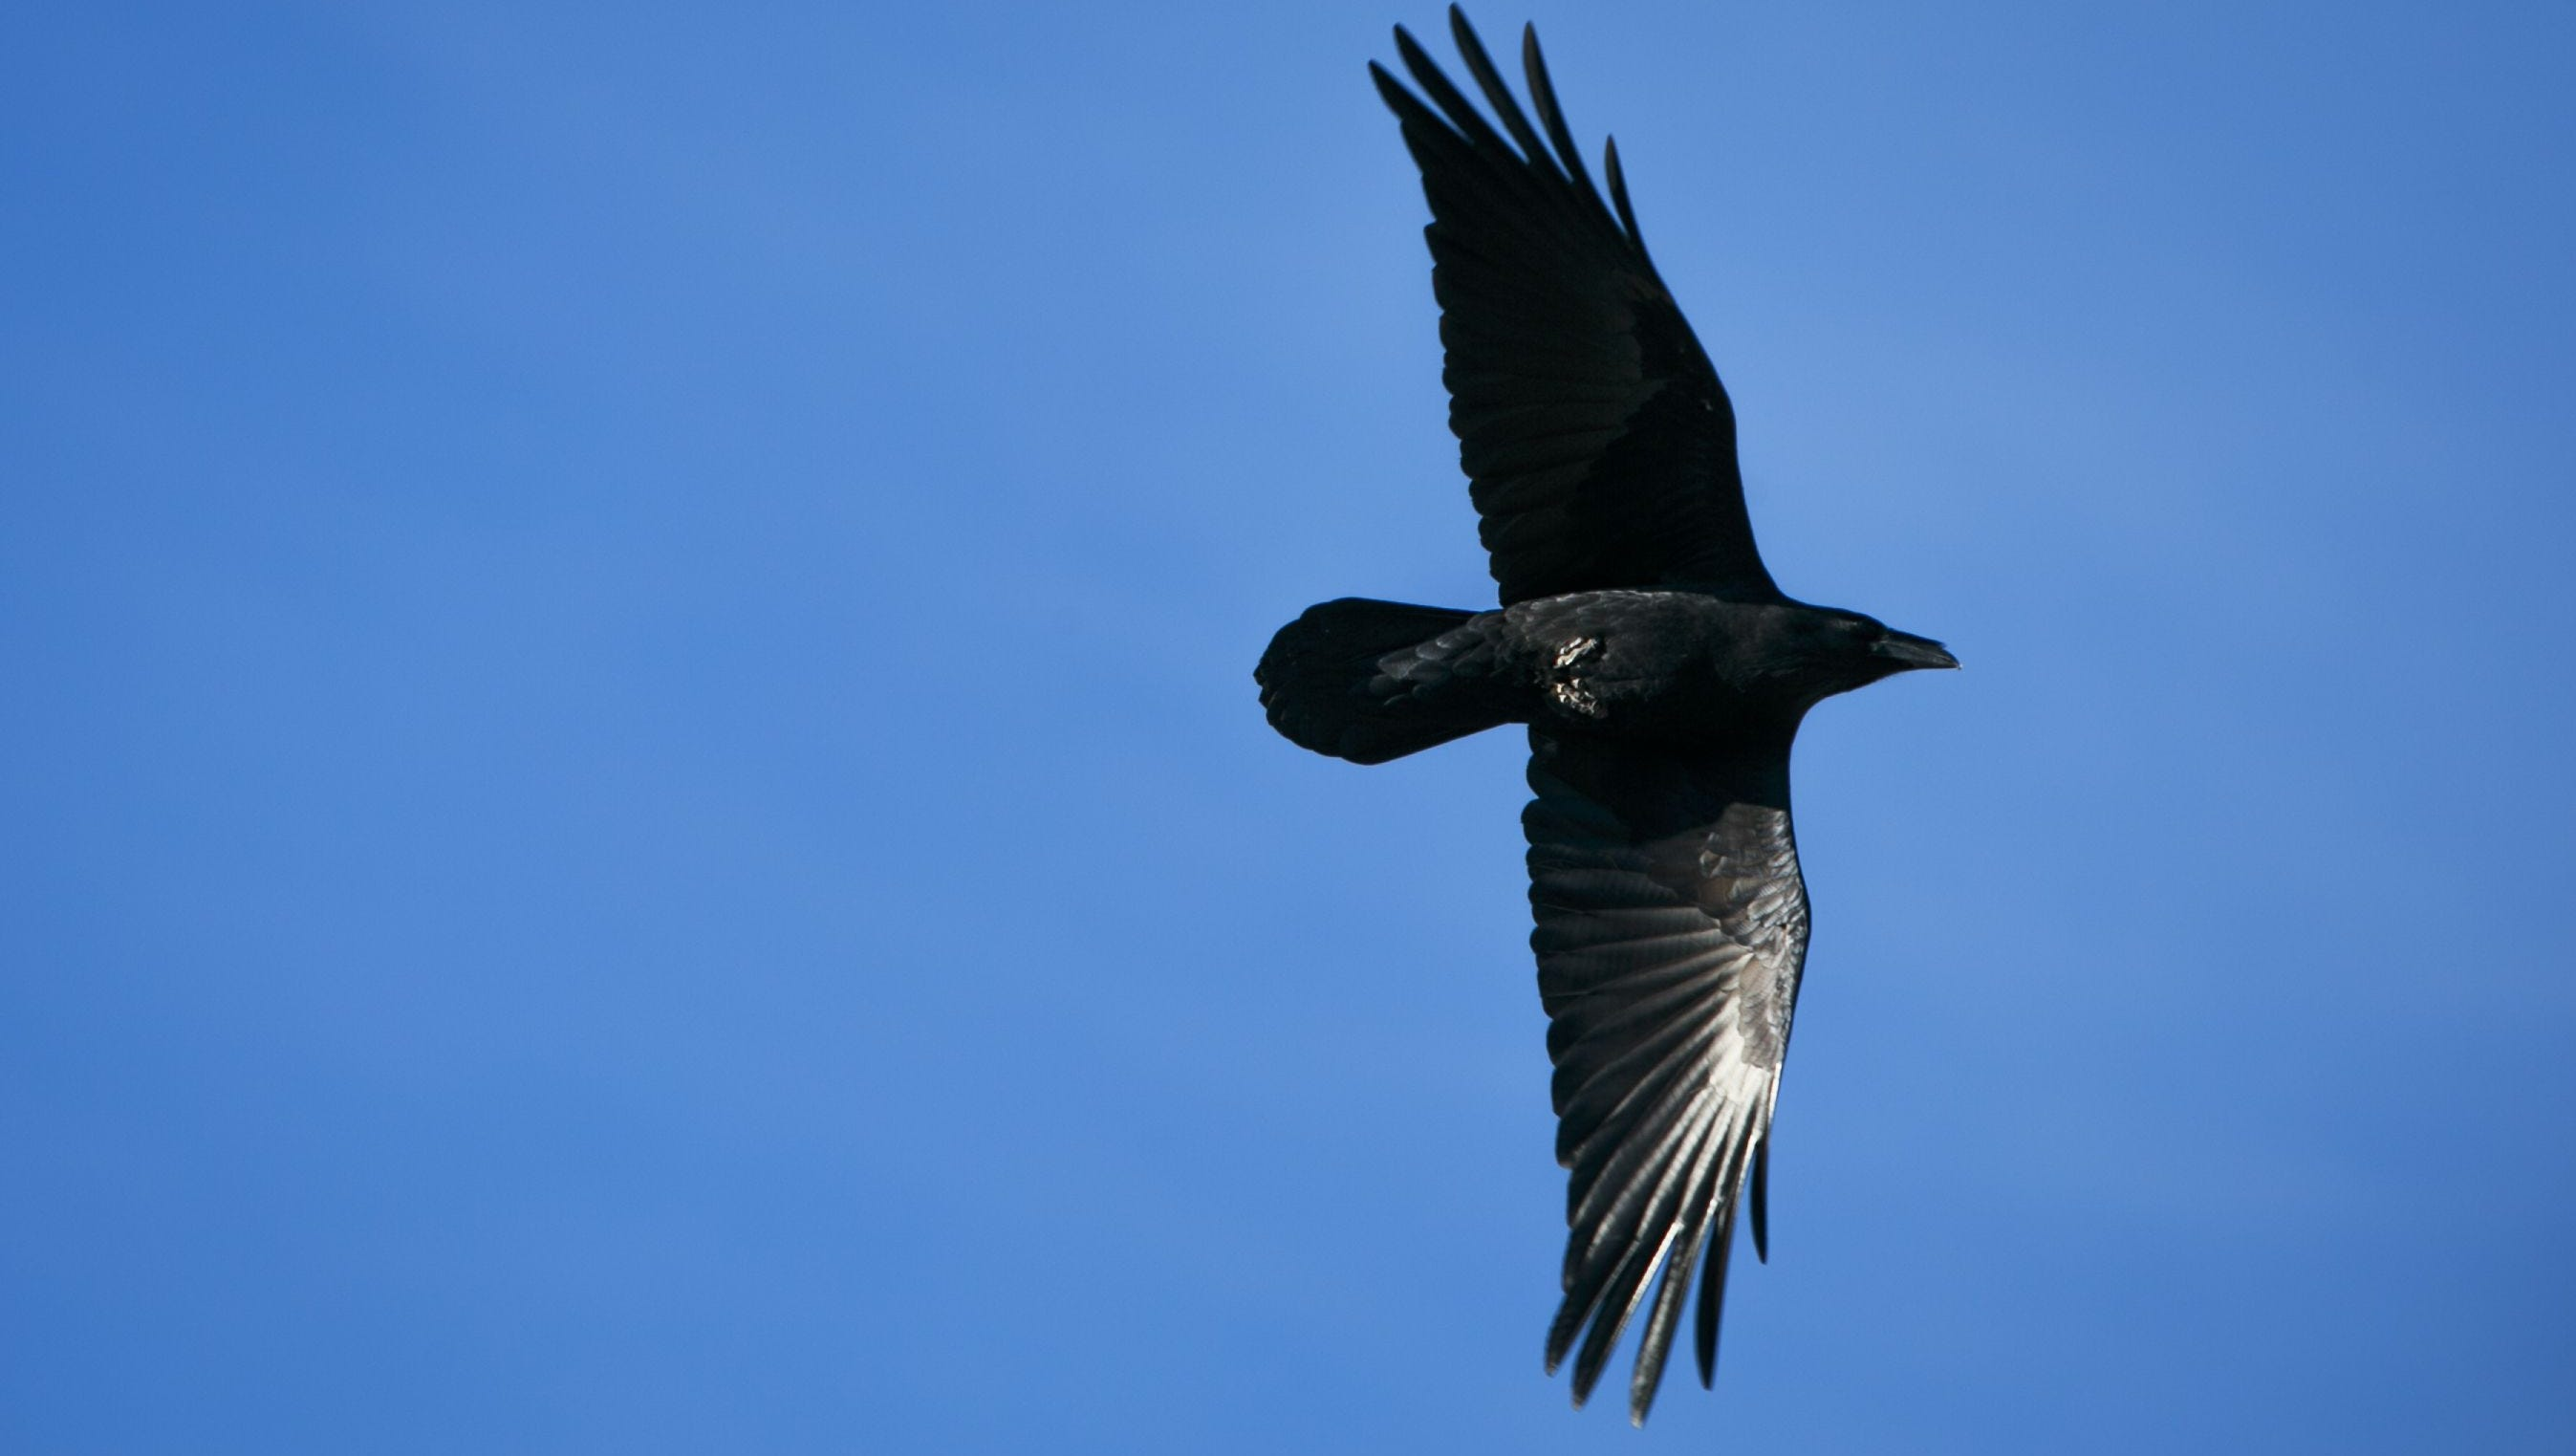 Those Black Birds In Arizona Are Nothing To Crow About